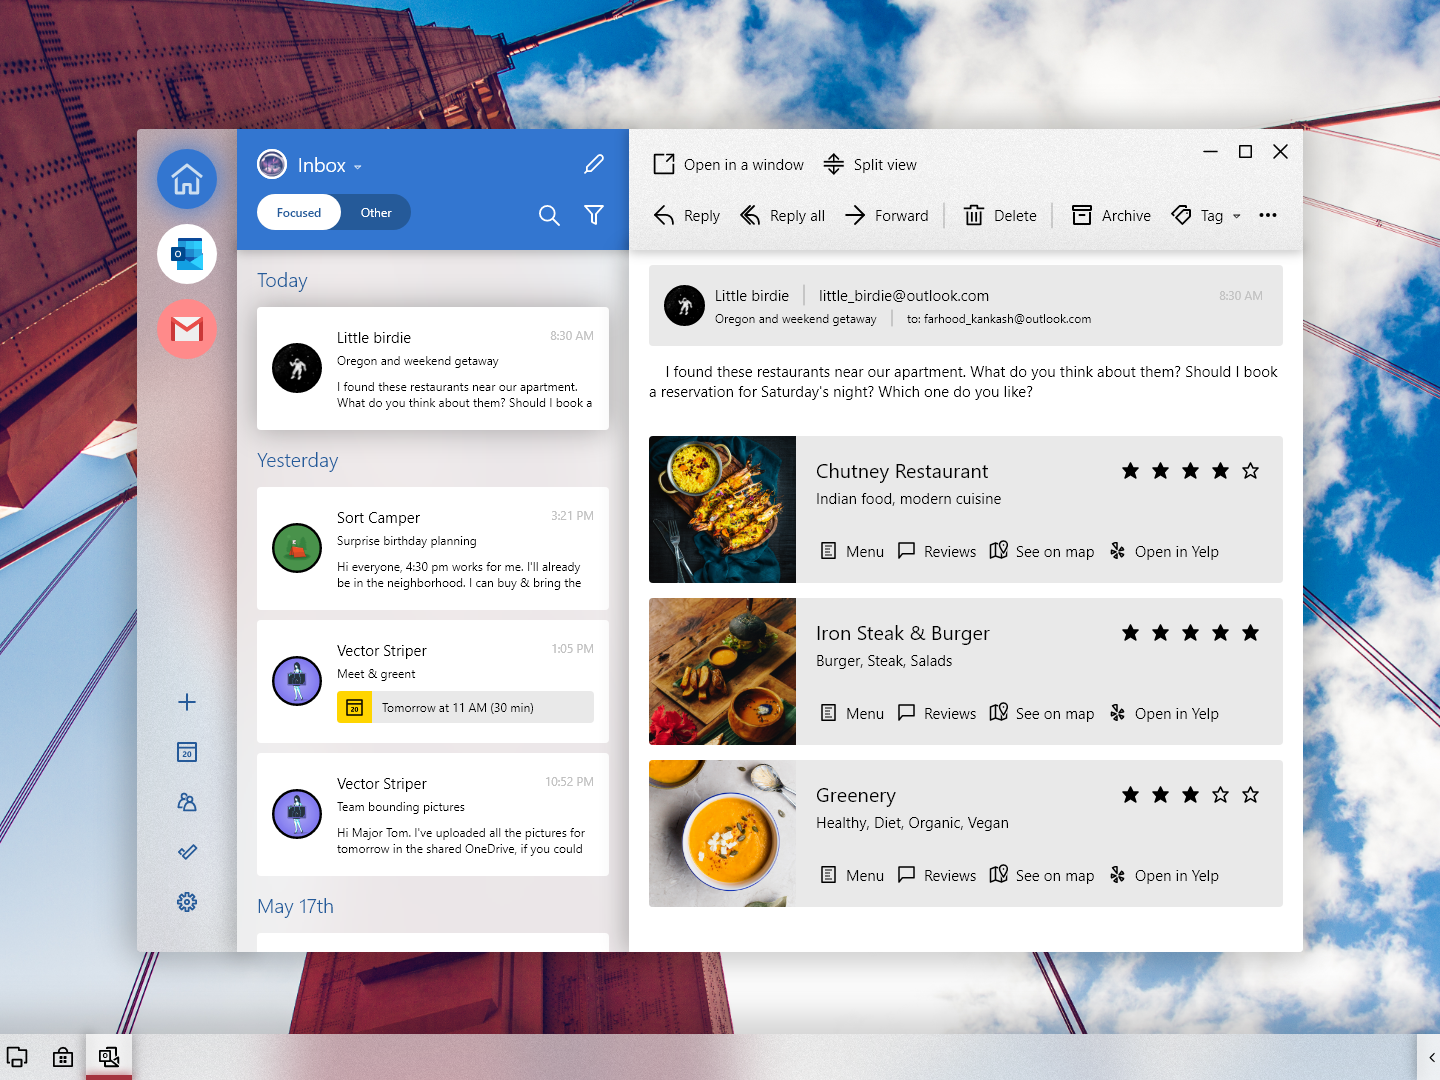 Windows London Mail yahoo gmail outlook cards resturant yelp message email inbox mailbox mail app adobexd windows 10 windows ux ui microsoft fluent design fluent